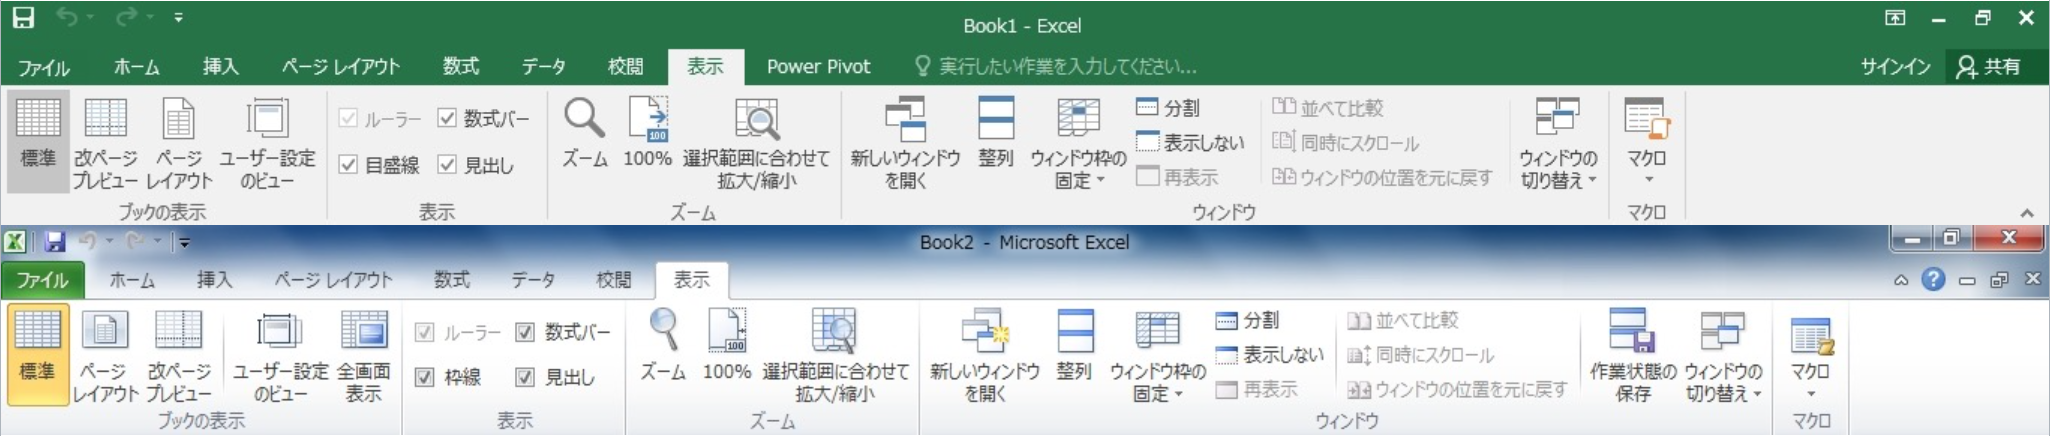 Excel2016とExcel2010の表示タブ